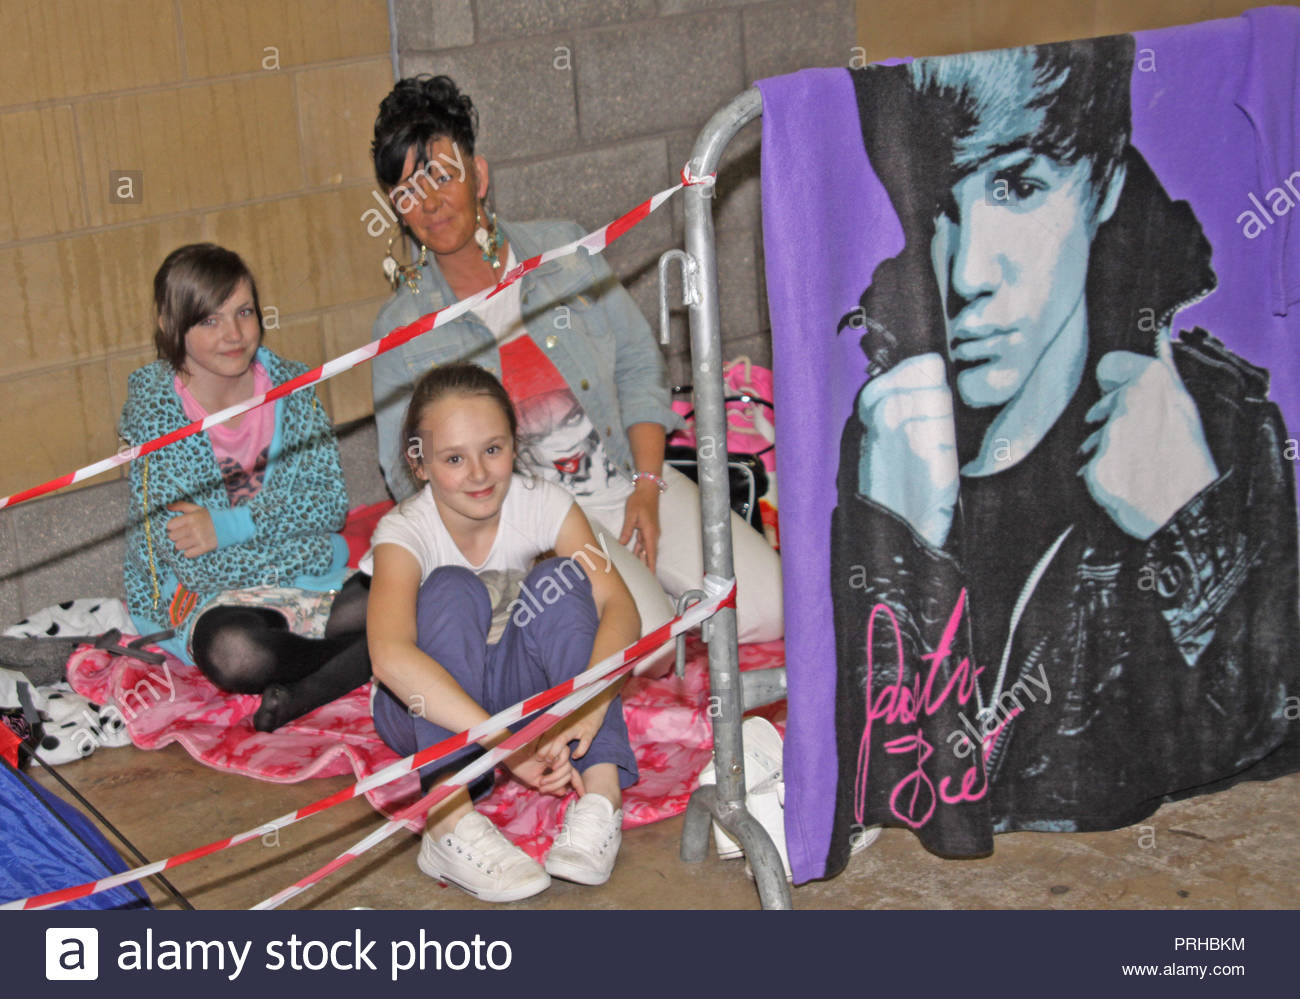 Justin Bieber fans are sleeping outside manchester arena since monday 02 July, waiting for tickets to go on sale this friday 06 July 2012 for his concert on 19 February 2013 photo taken on Wednesday 04 July 2012  the school warden needs to take a trip down to the arena and find out who is bunking off school... - Stock Image